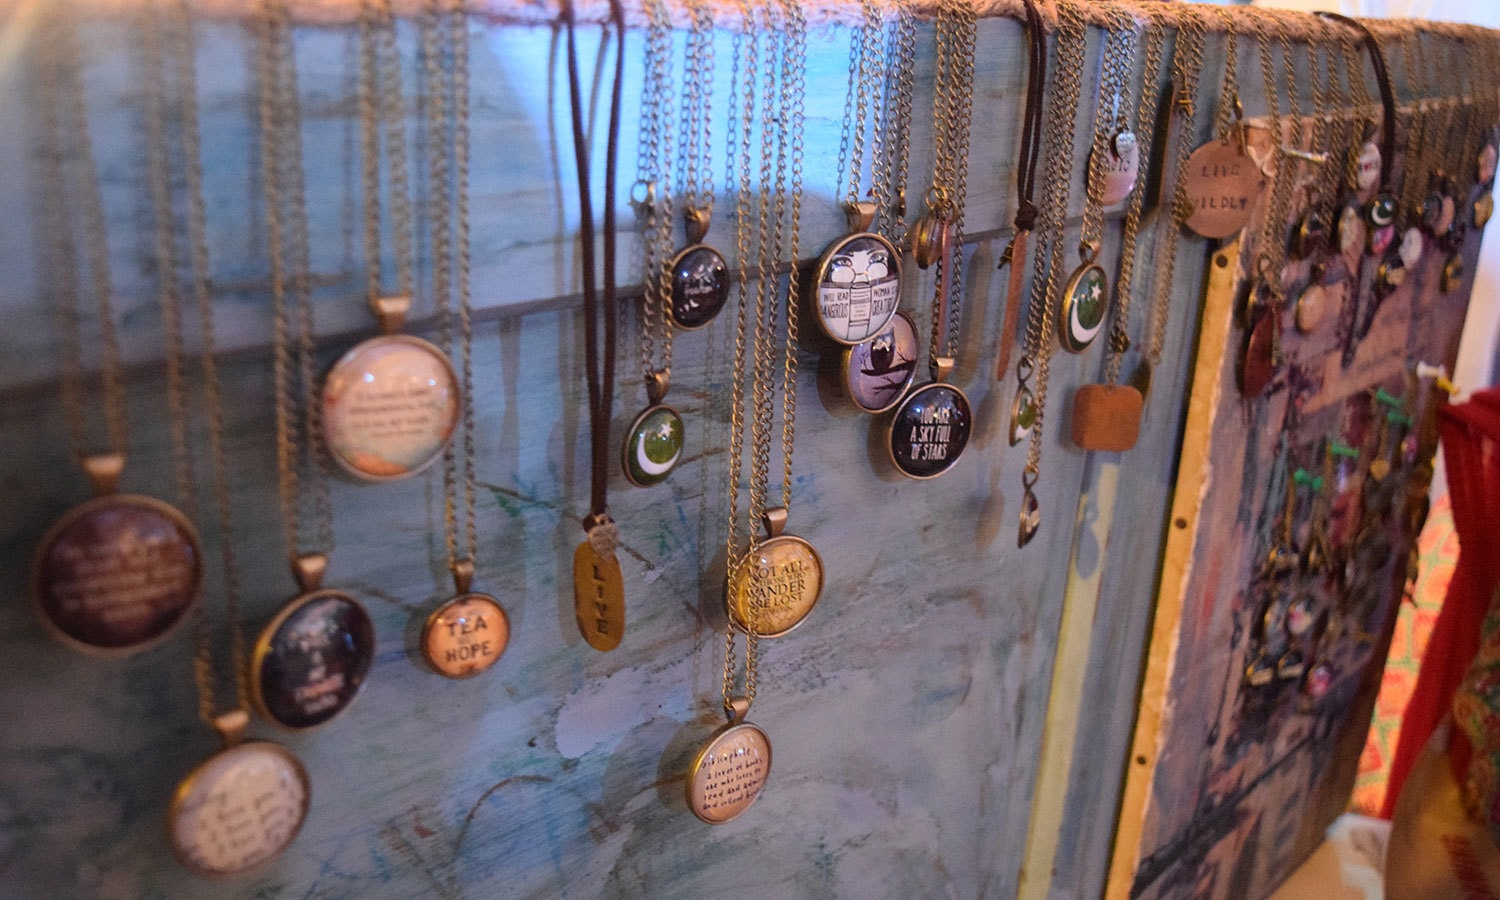 Pendents by Ifrah's Collection. — Photo by Zoya Anwer